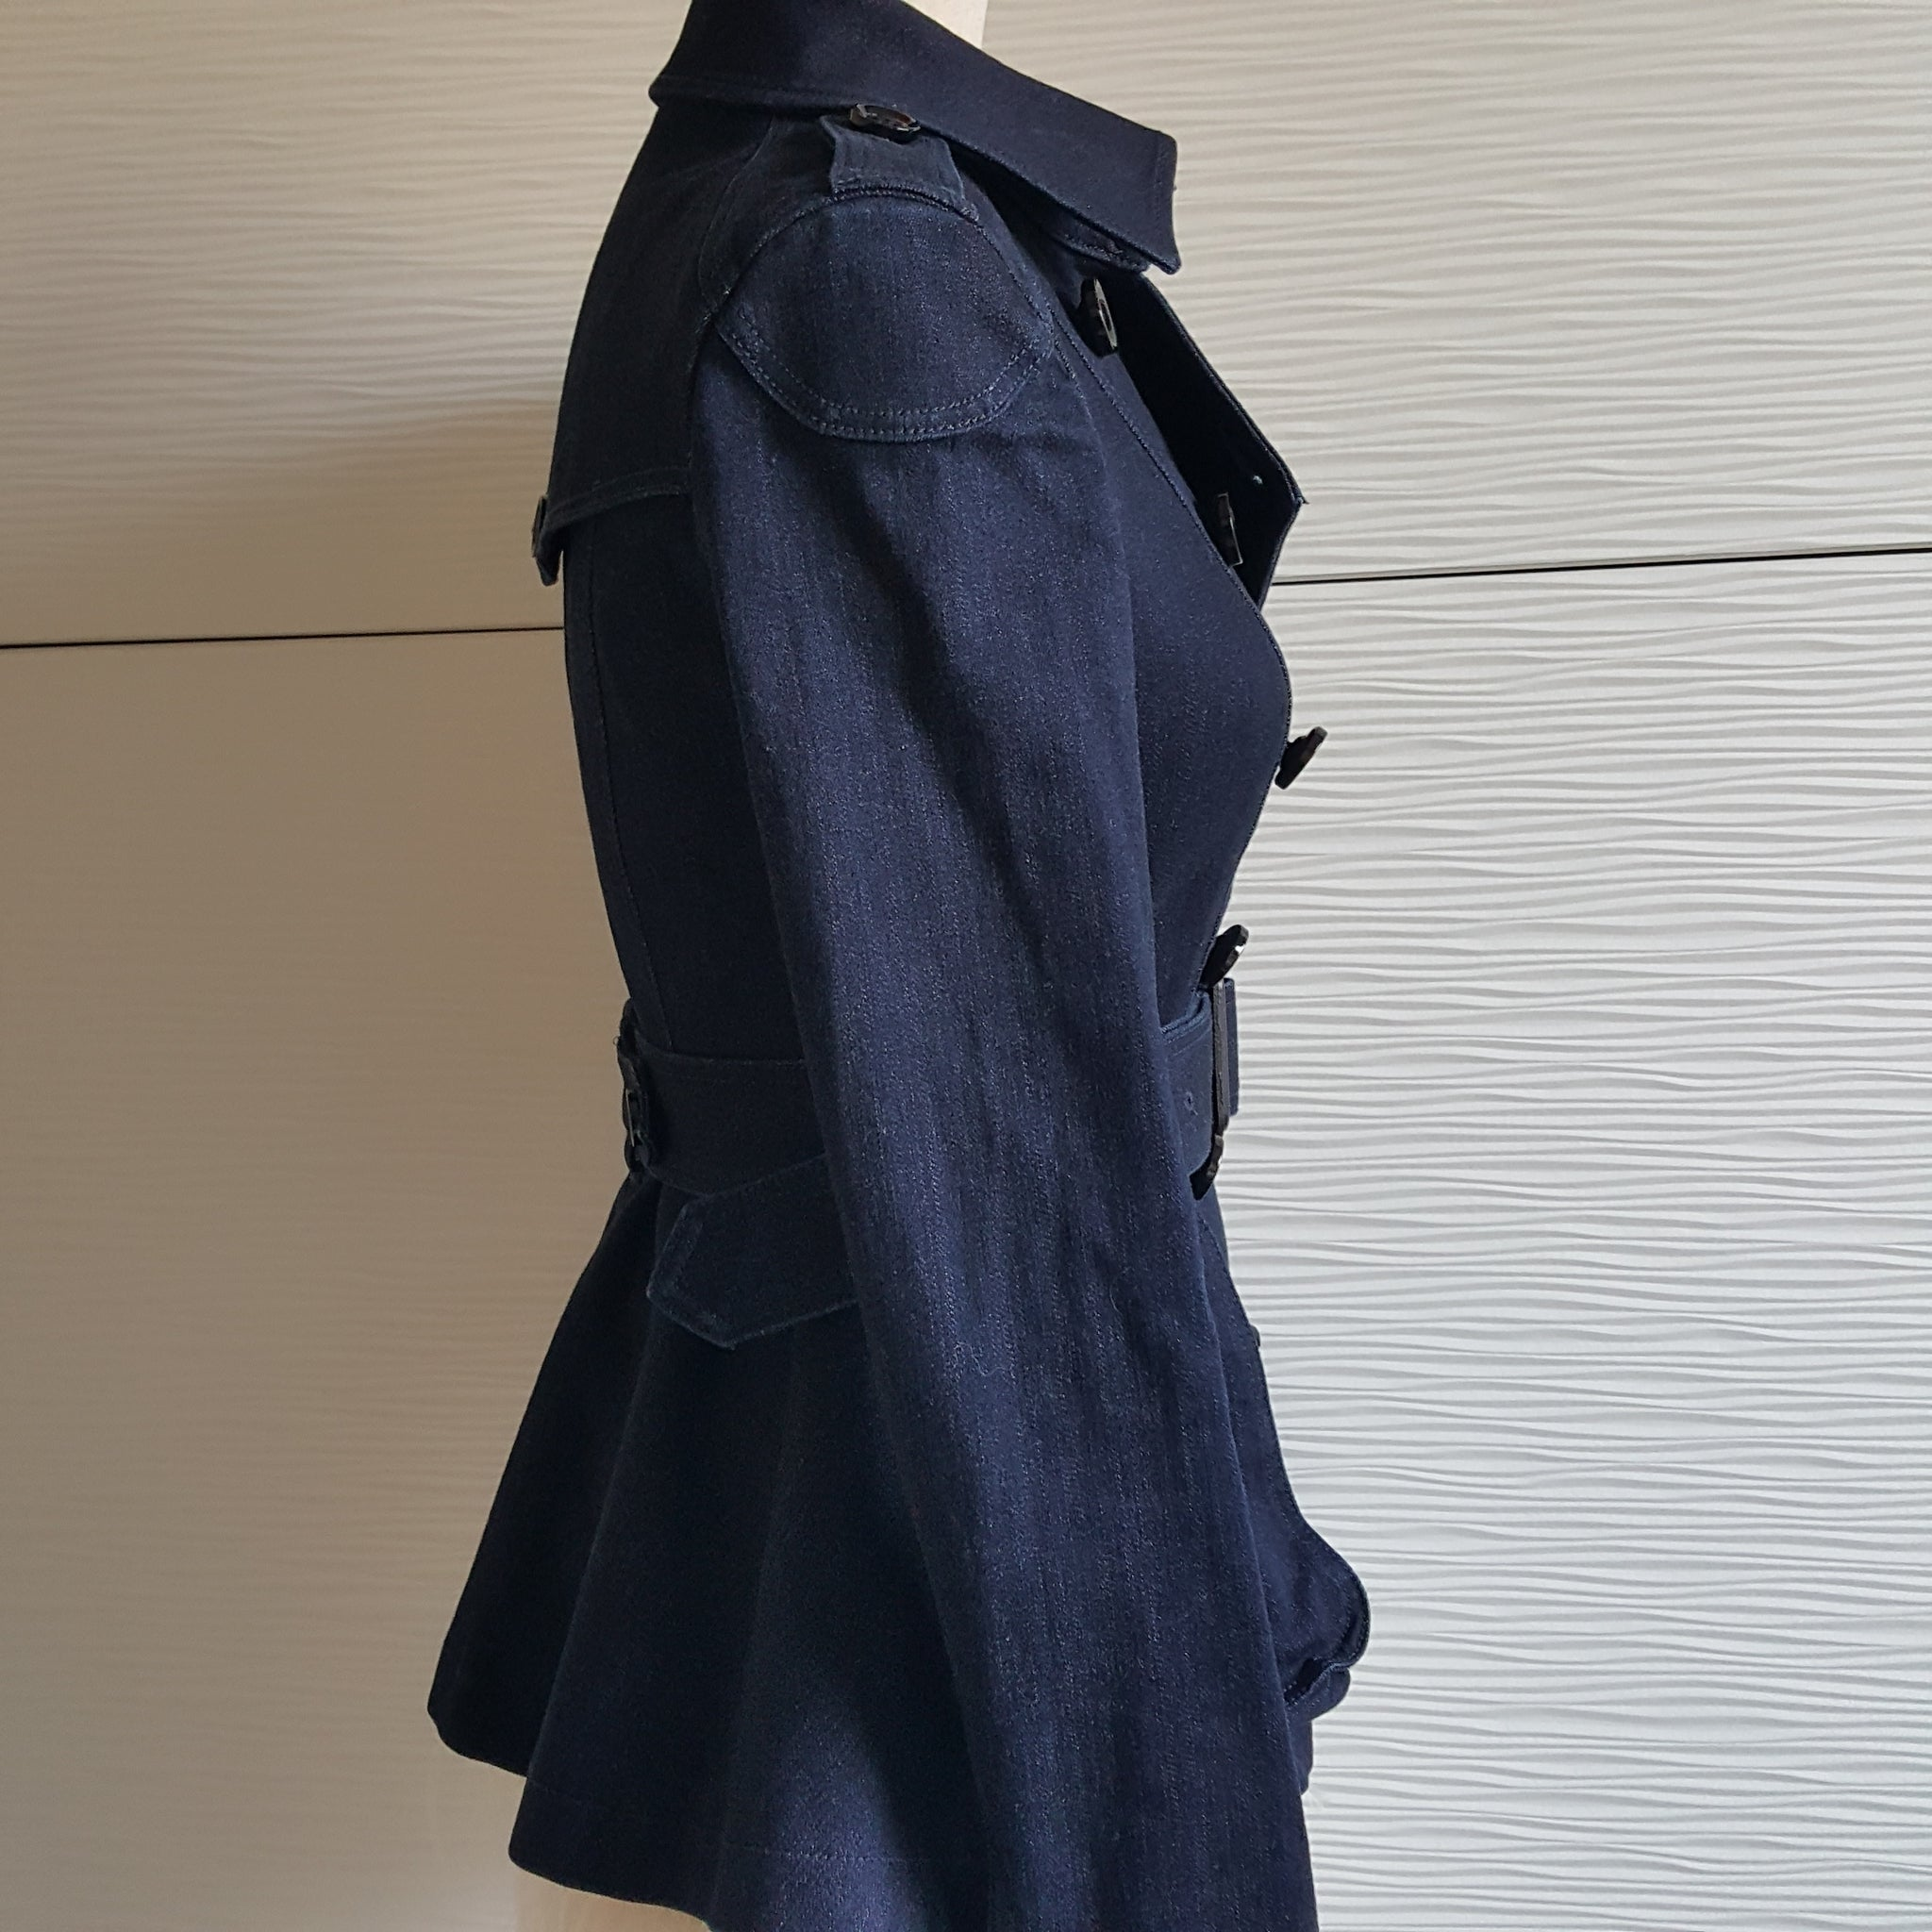 BURBERRY BRIT DENIM TRENCH COAT - SIZE XS